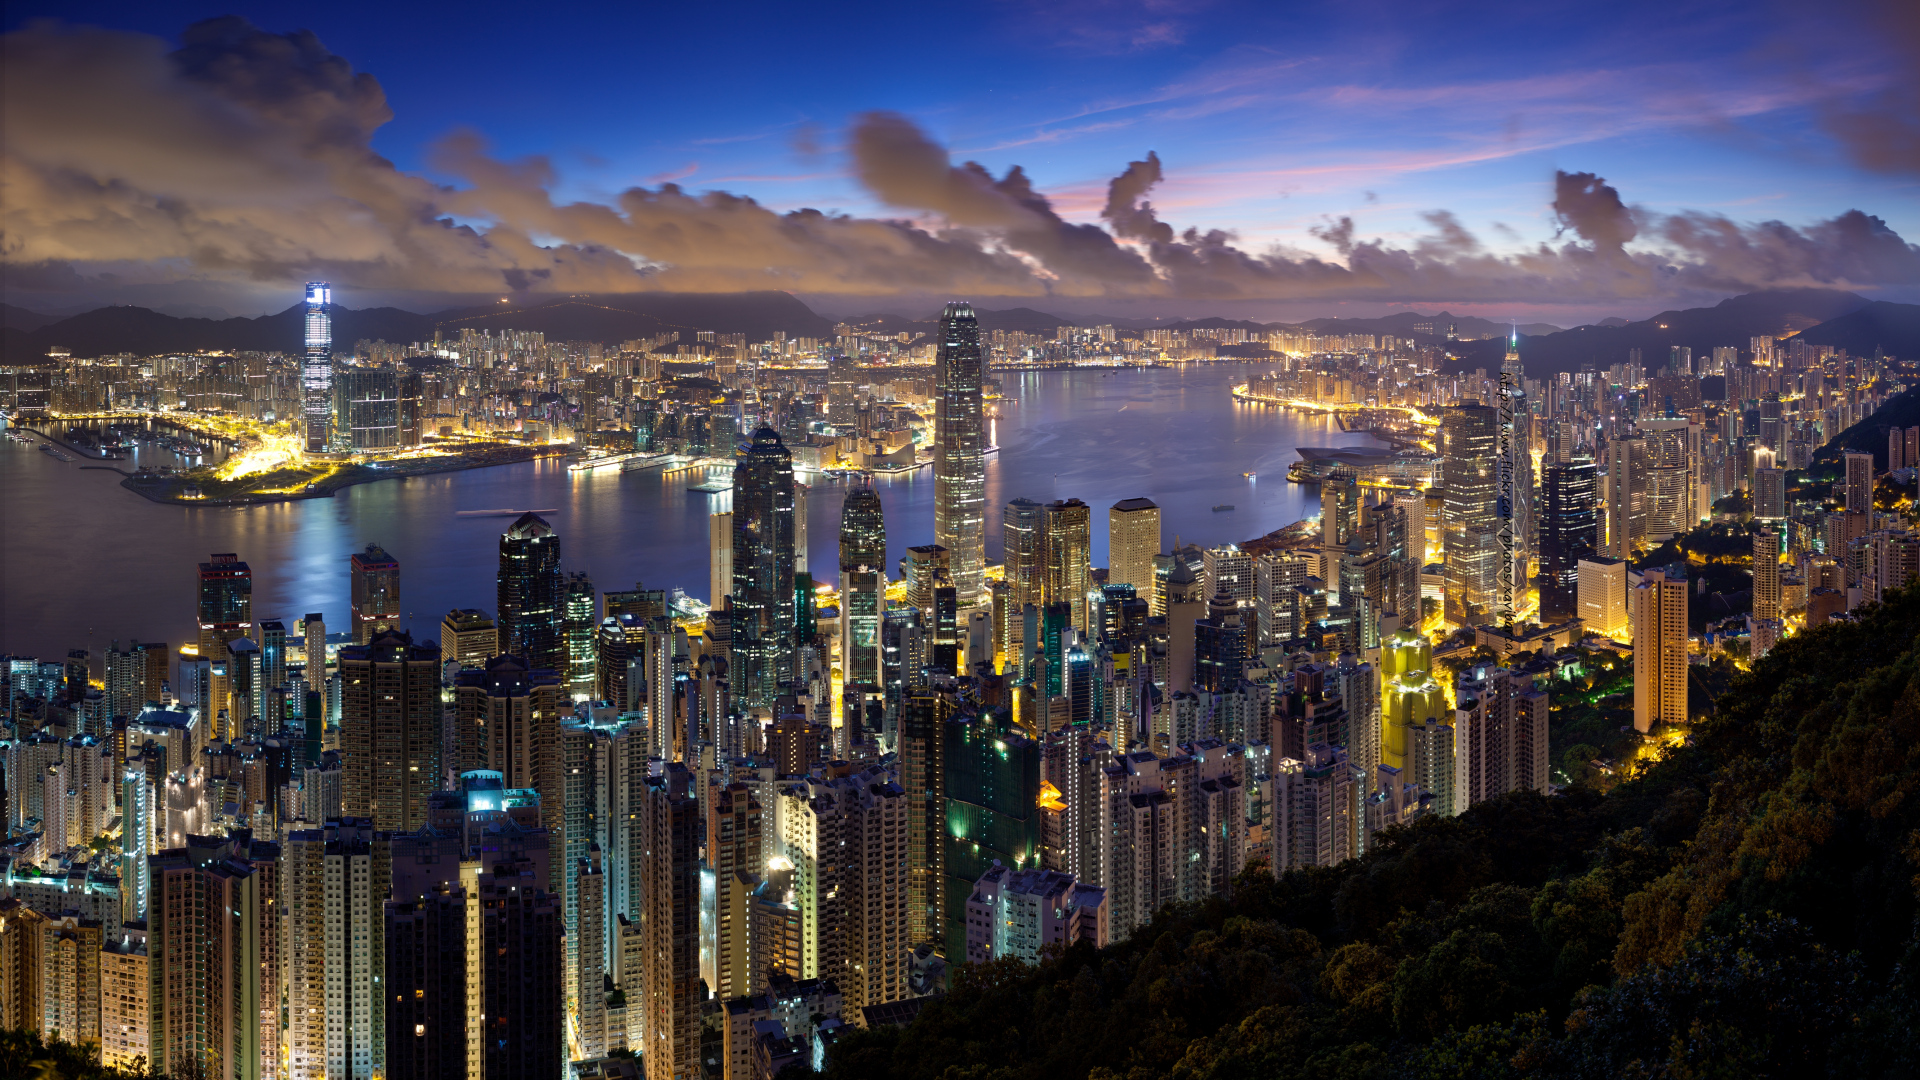 city_hong_kong_night_clouds_lights_58330_1920x1080.jpg